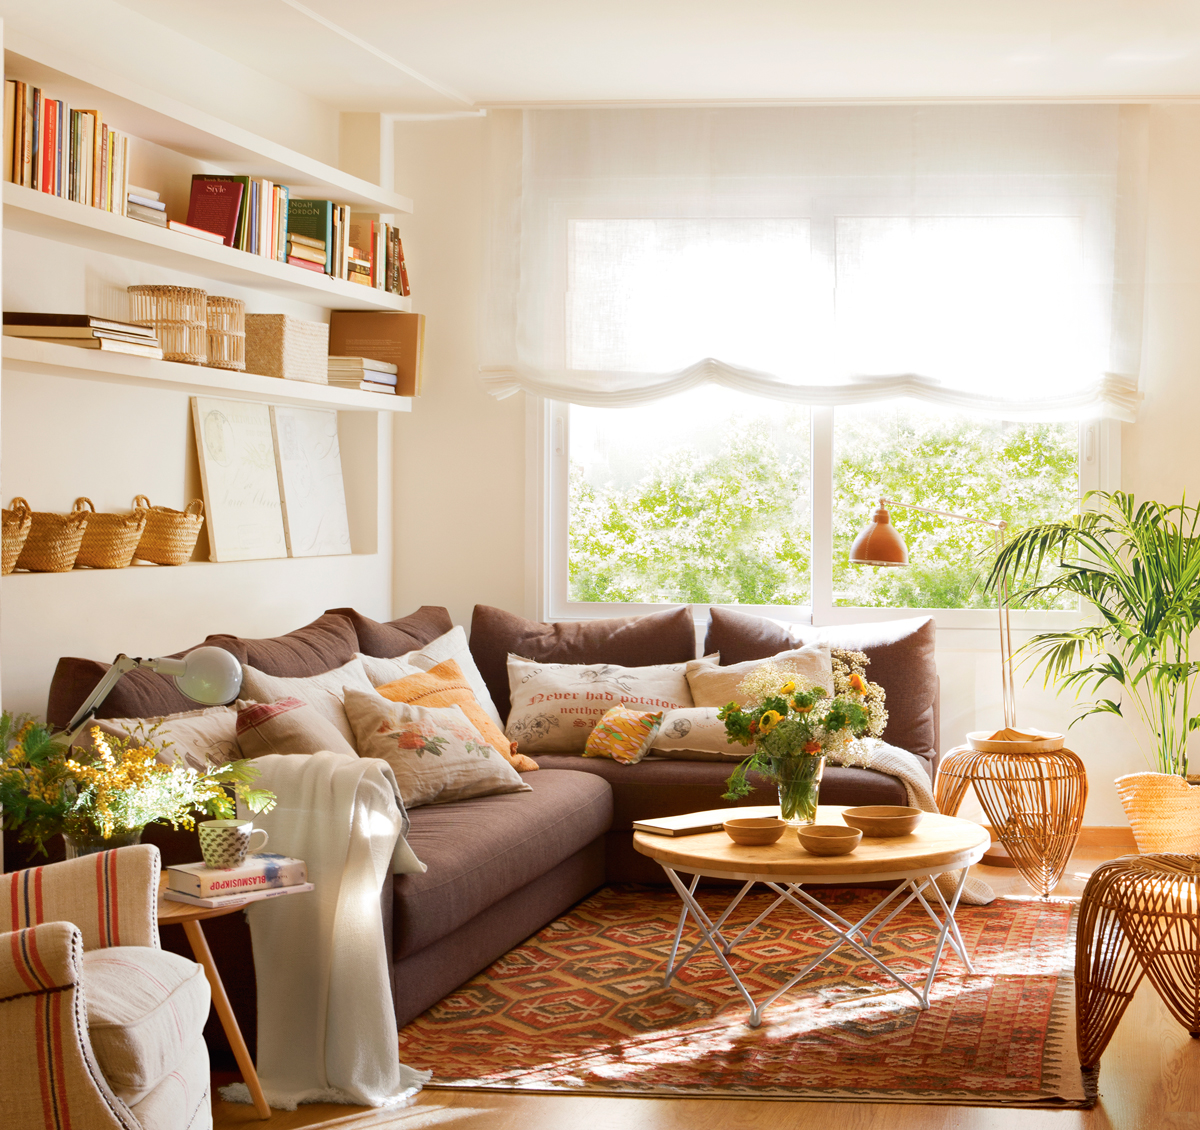 10 ideas geniales para salones peque os - Decorar un salon grande ...